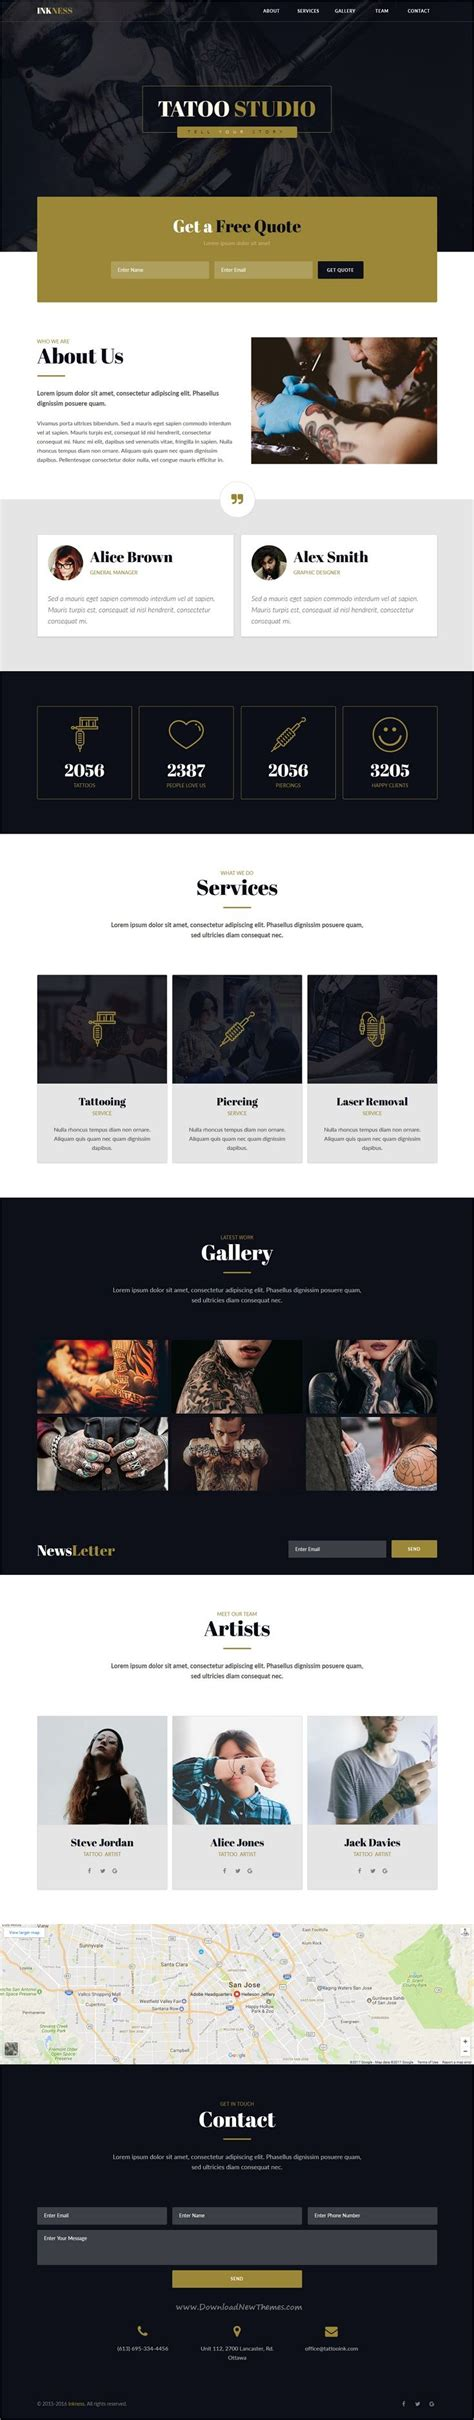 421 Best Best Adobe Muse Template Collection Images On Pinterest Adobe Muse Website Templates